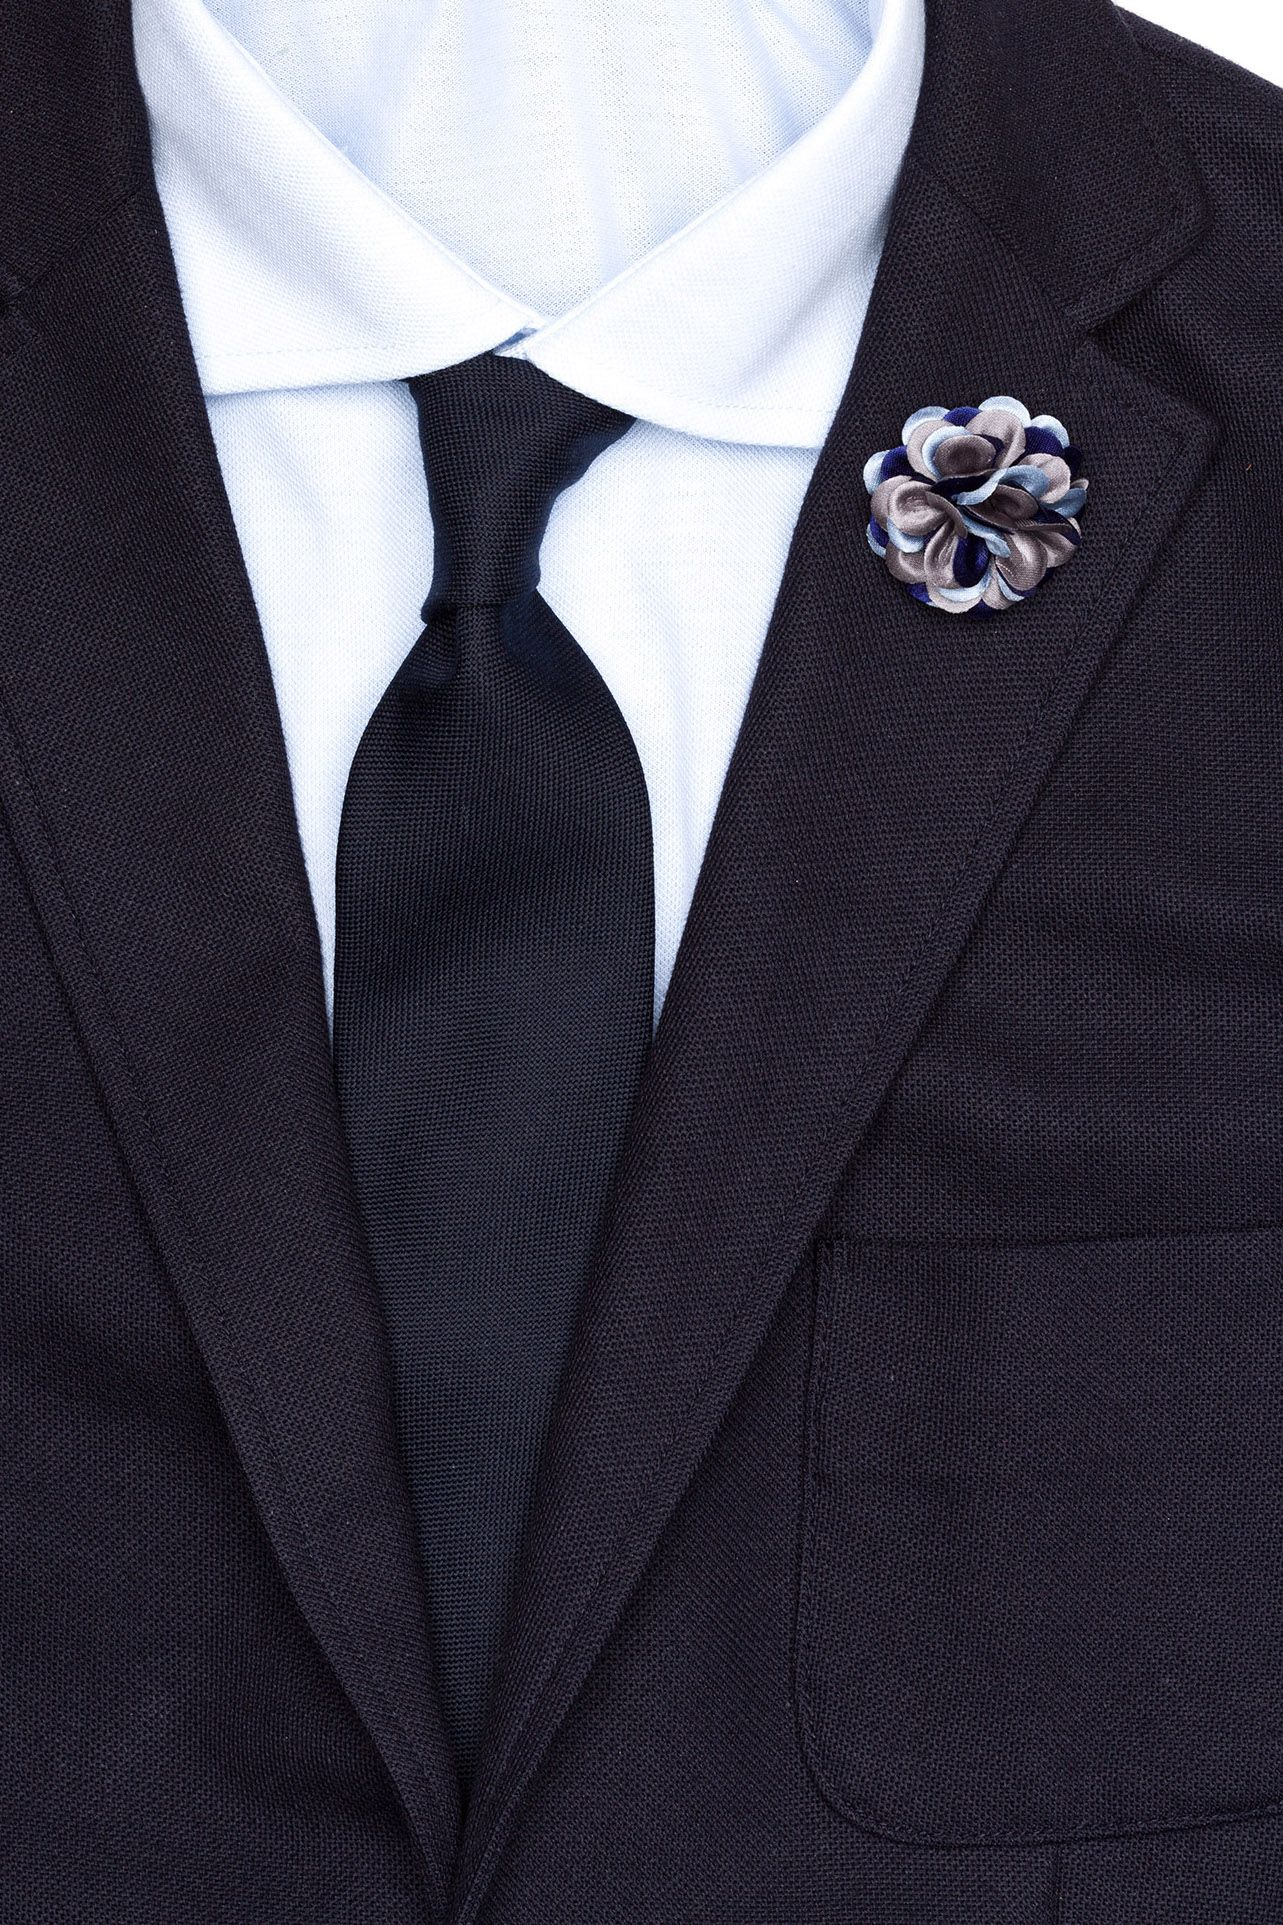 Lapel Flower at hook + ALBERT in grape jam, blue star, dodge, siena, birch, firemouth, hunter, firebrick, gainsboro, steel blue, gardenia, jonquil, fern, orchid, aster, pronie, spruce, rhododendron